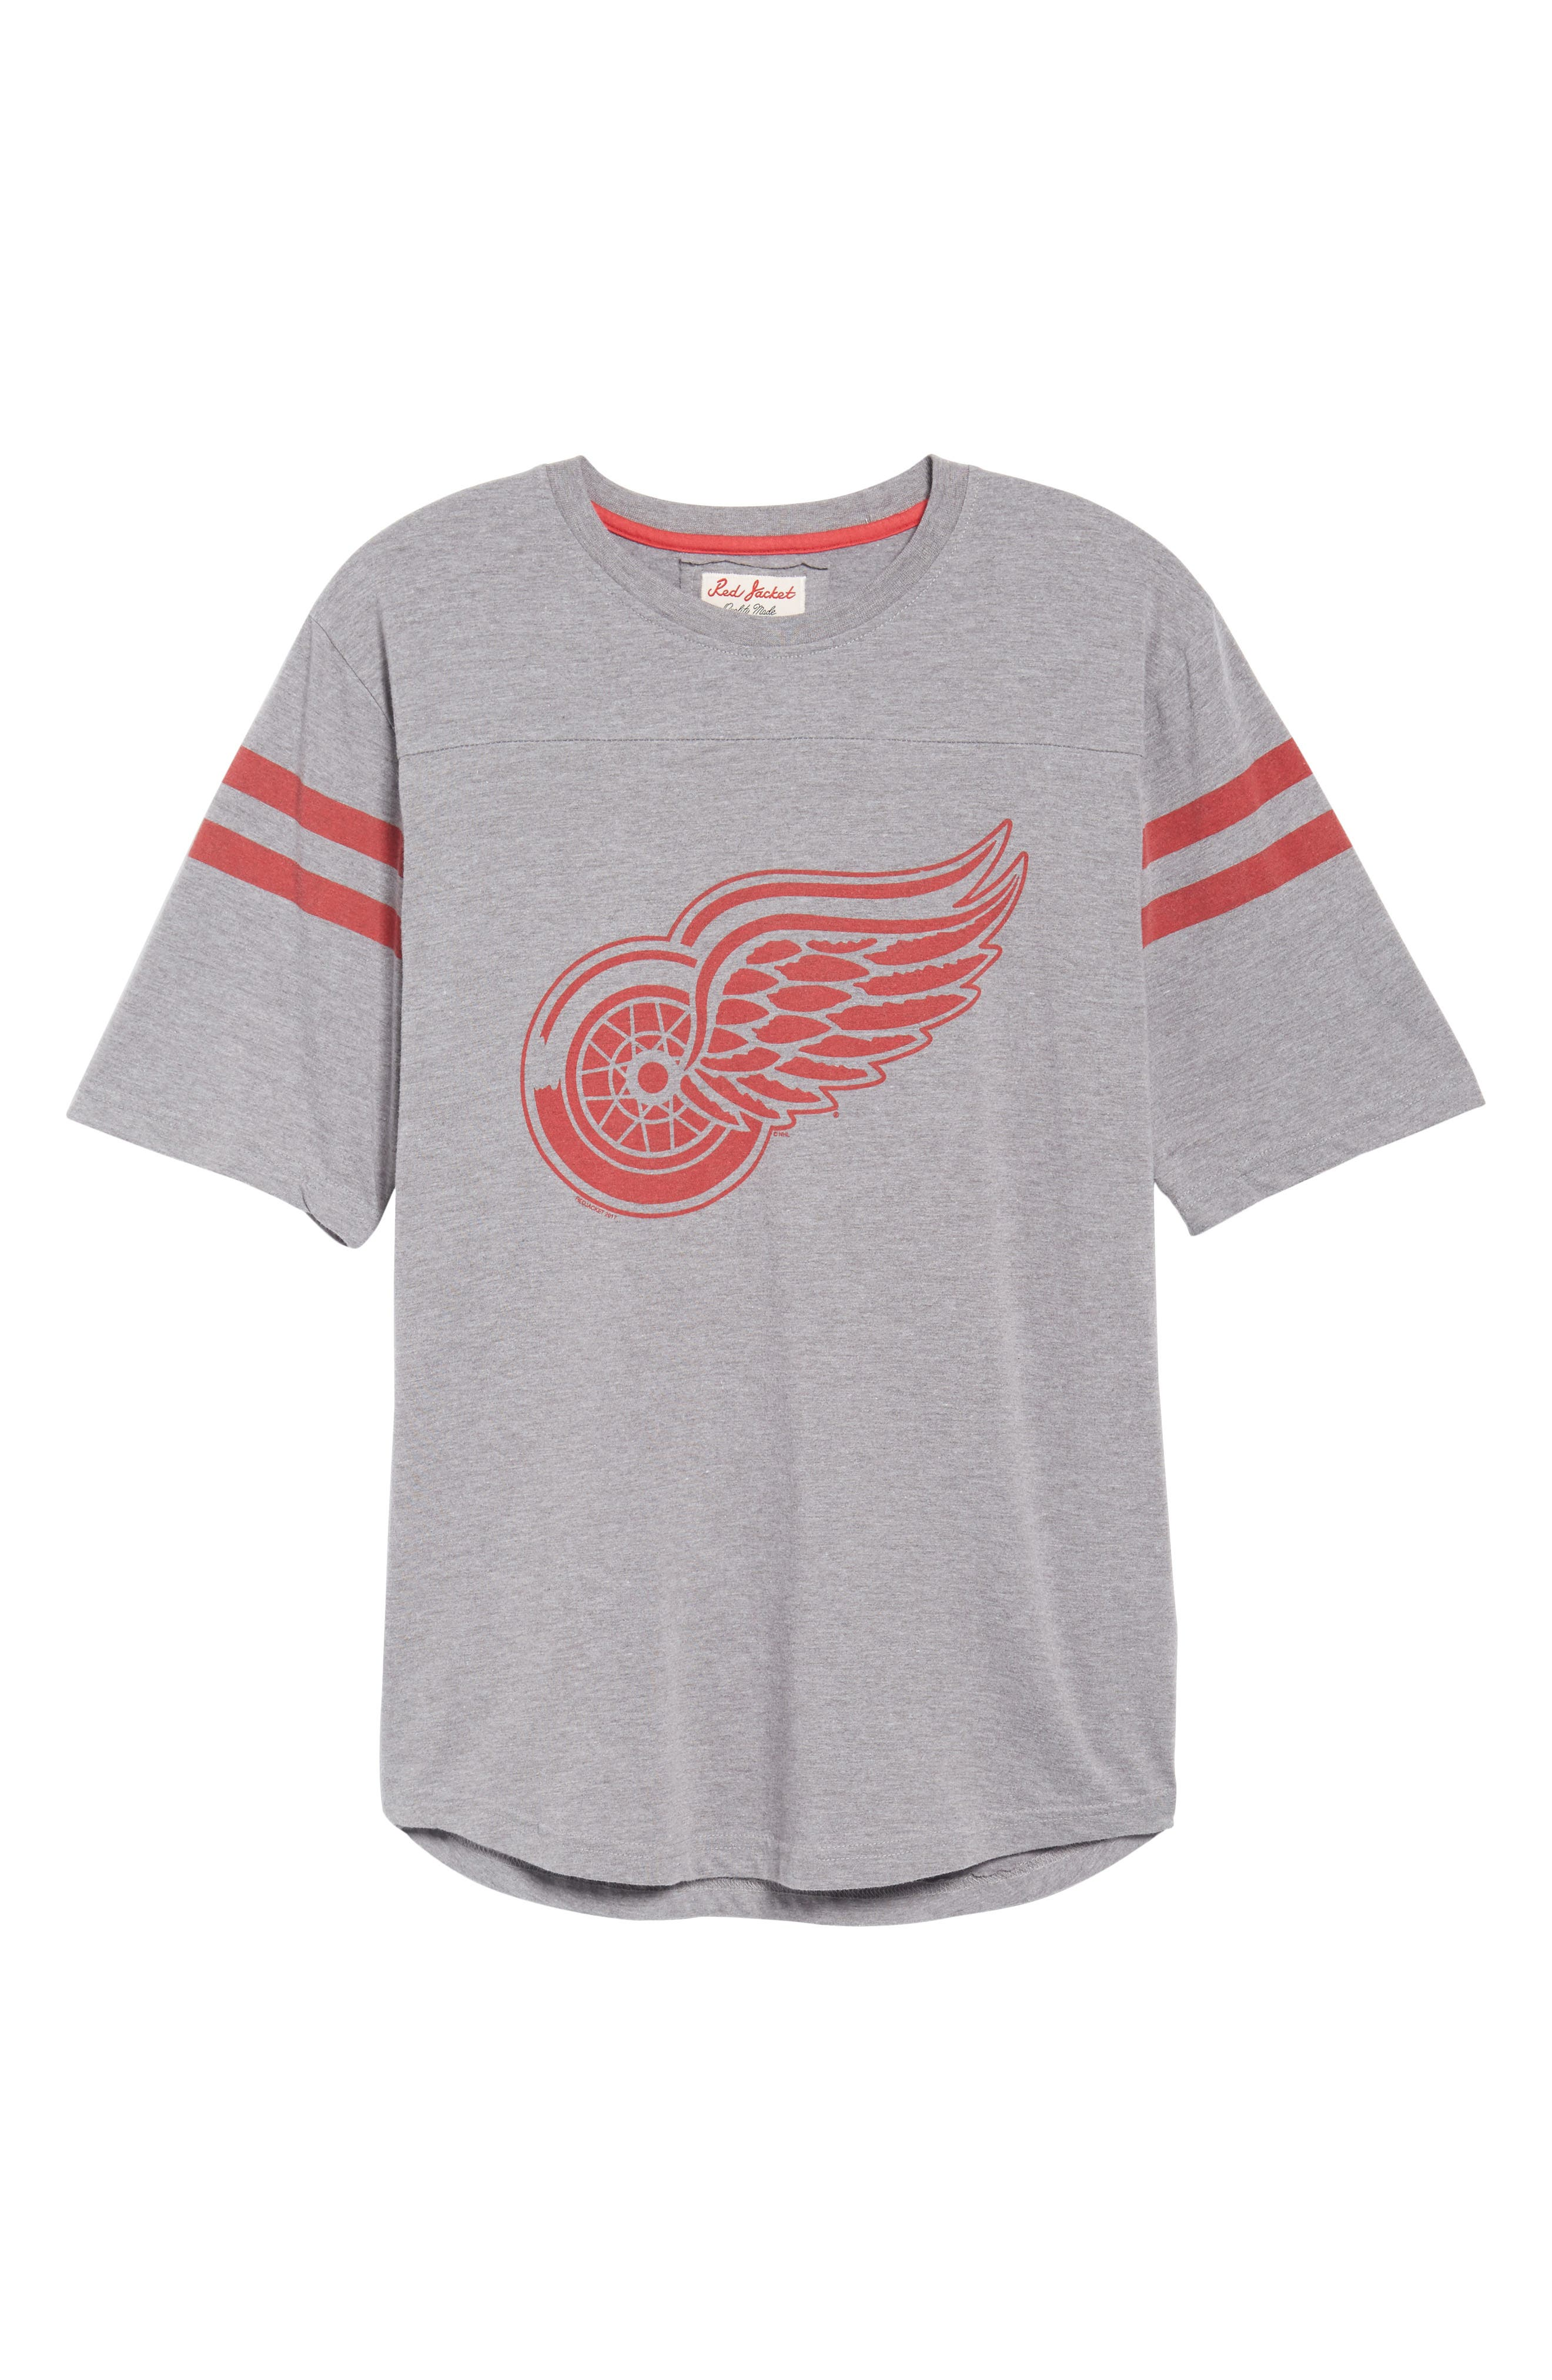 Crosby Detroit Red Wings T-Shirt,                             Alternate thumbnail 6, color,